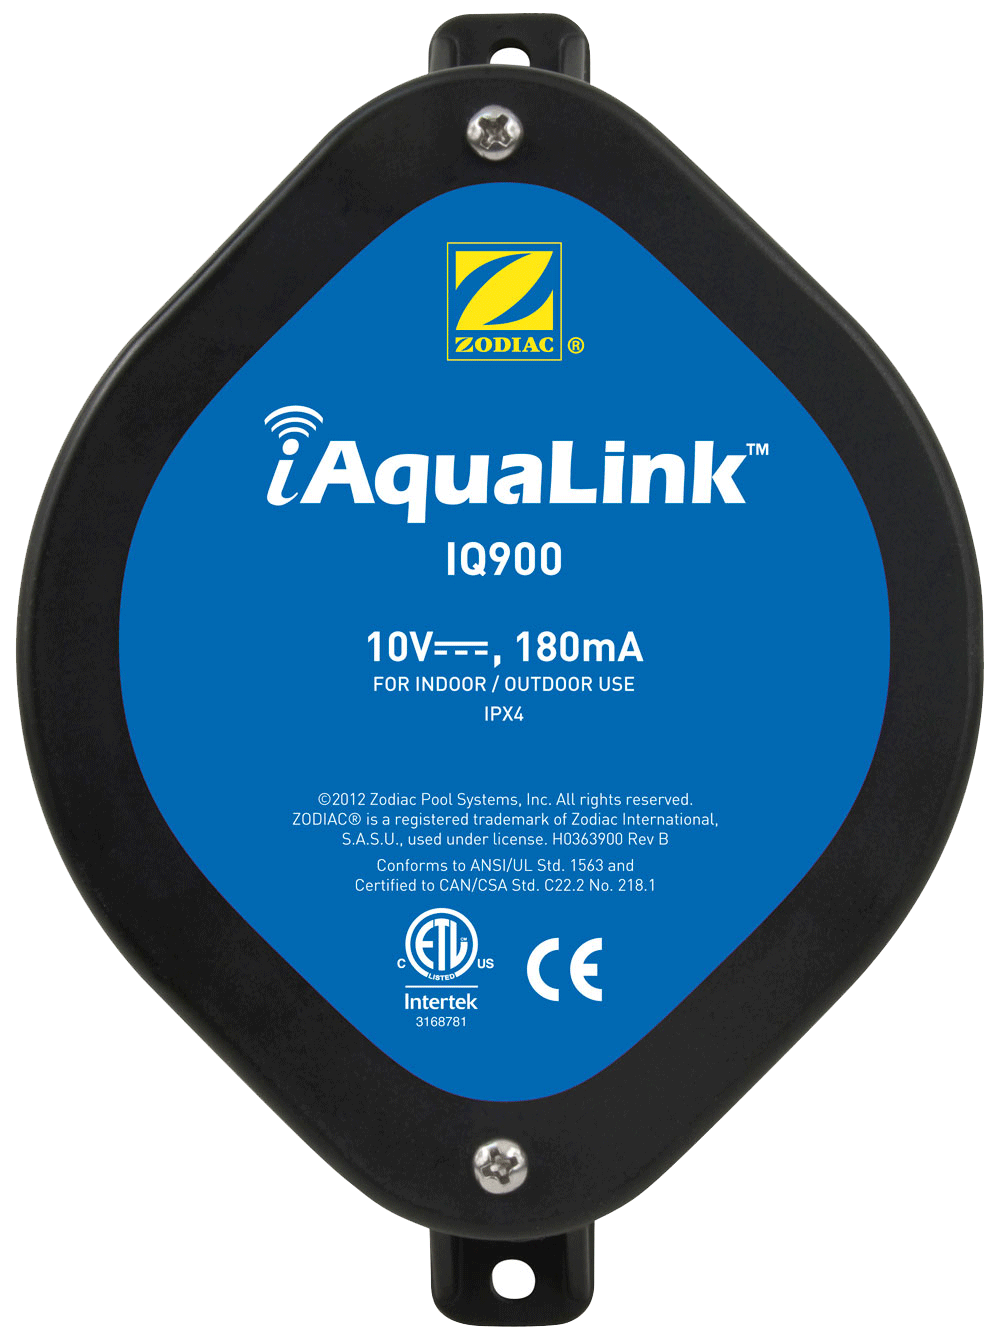 iAquaLink Swimming Pool Automation